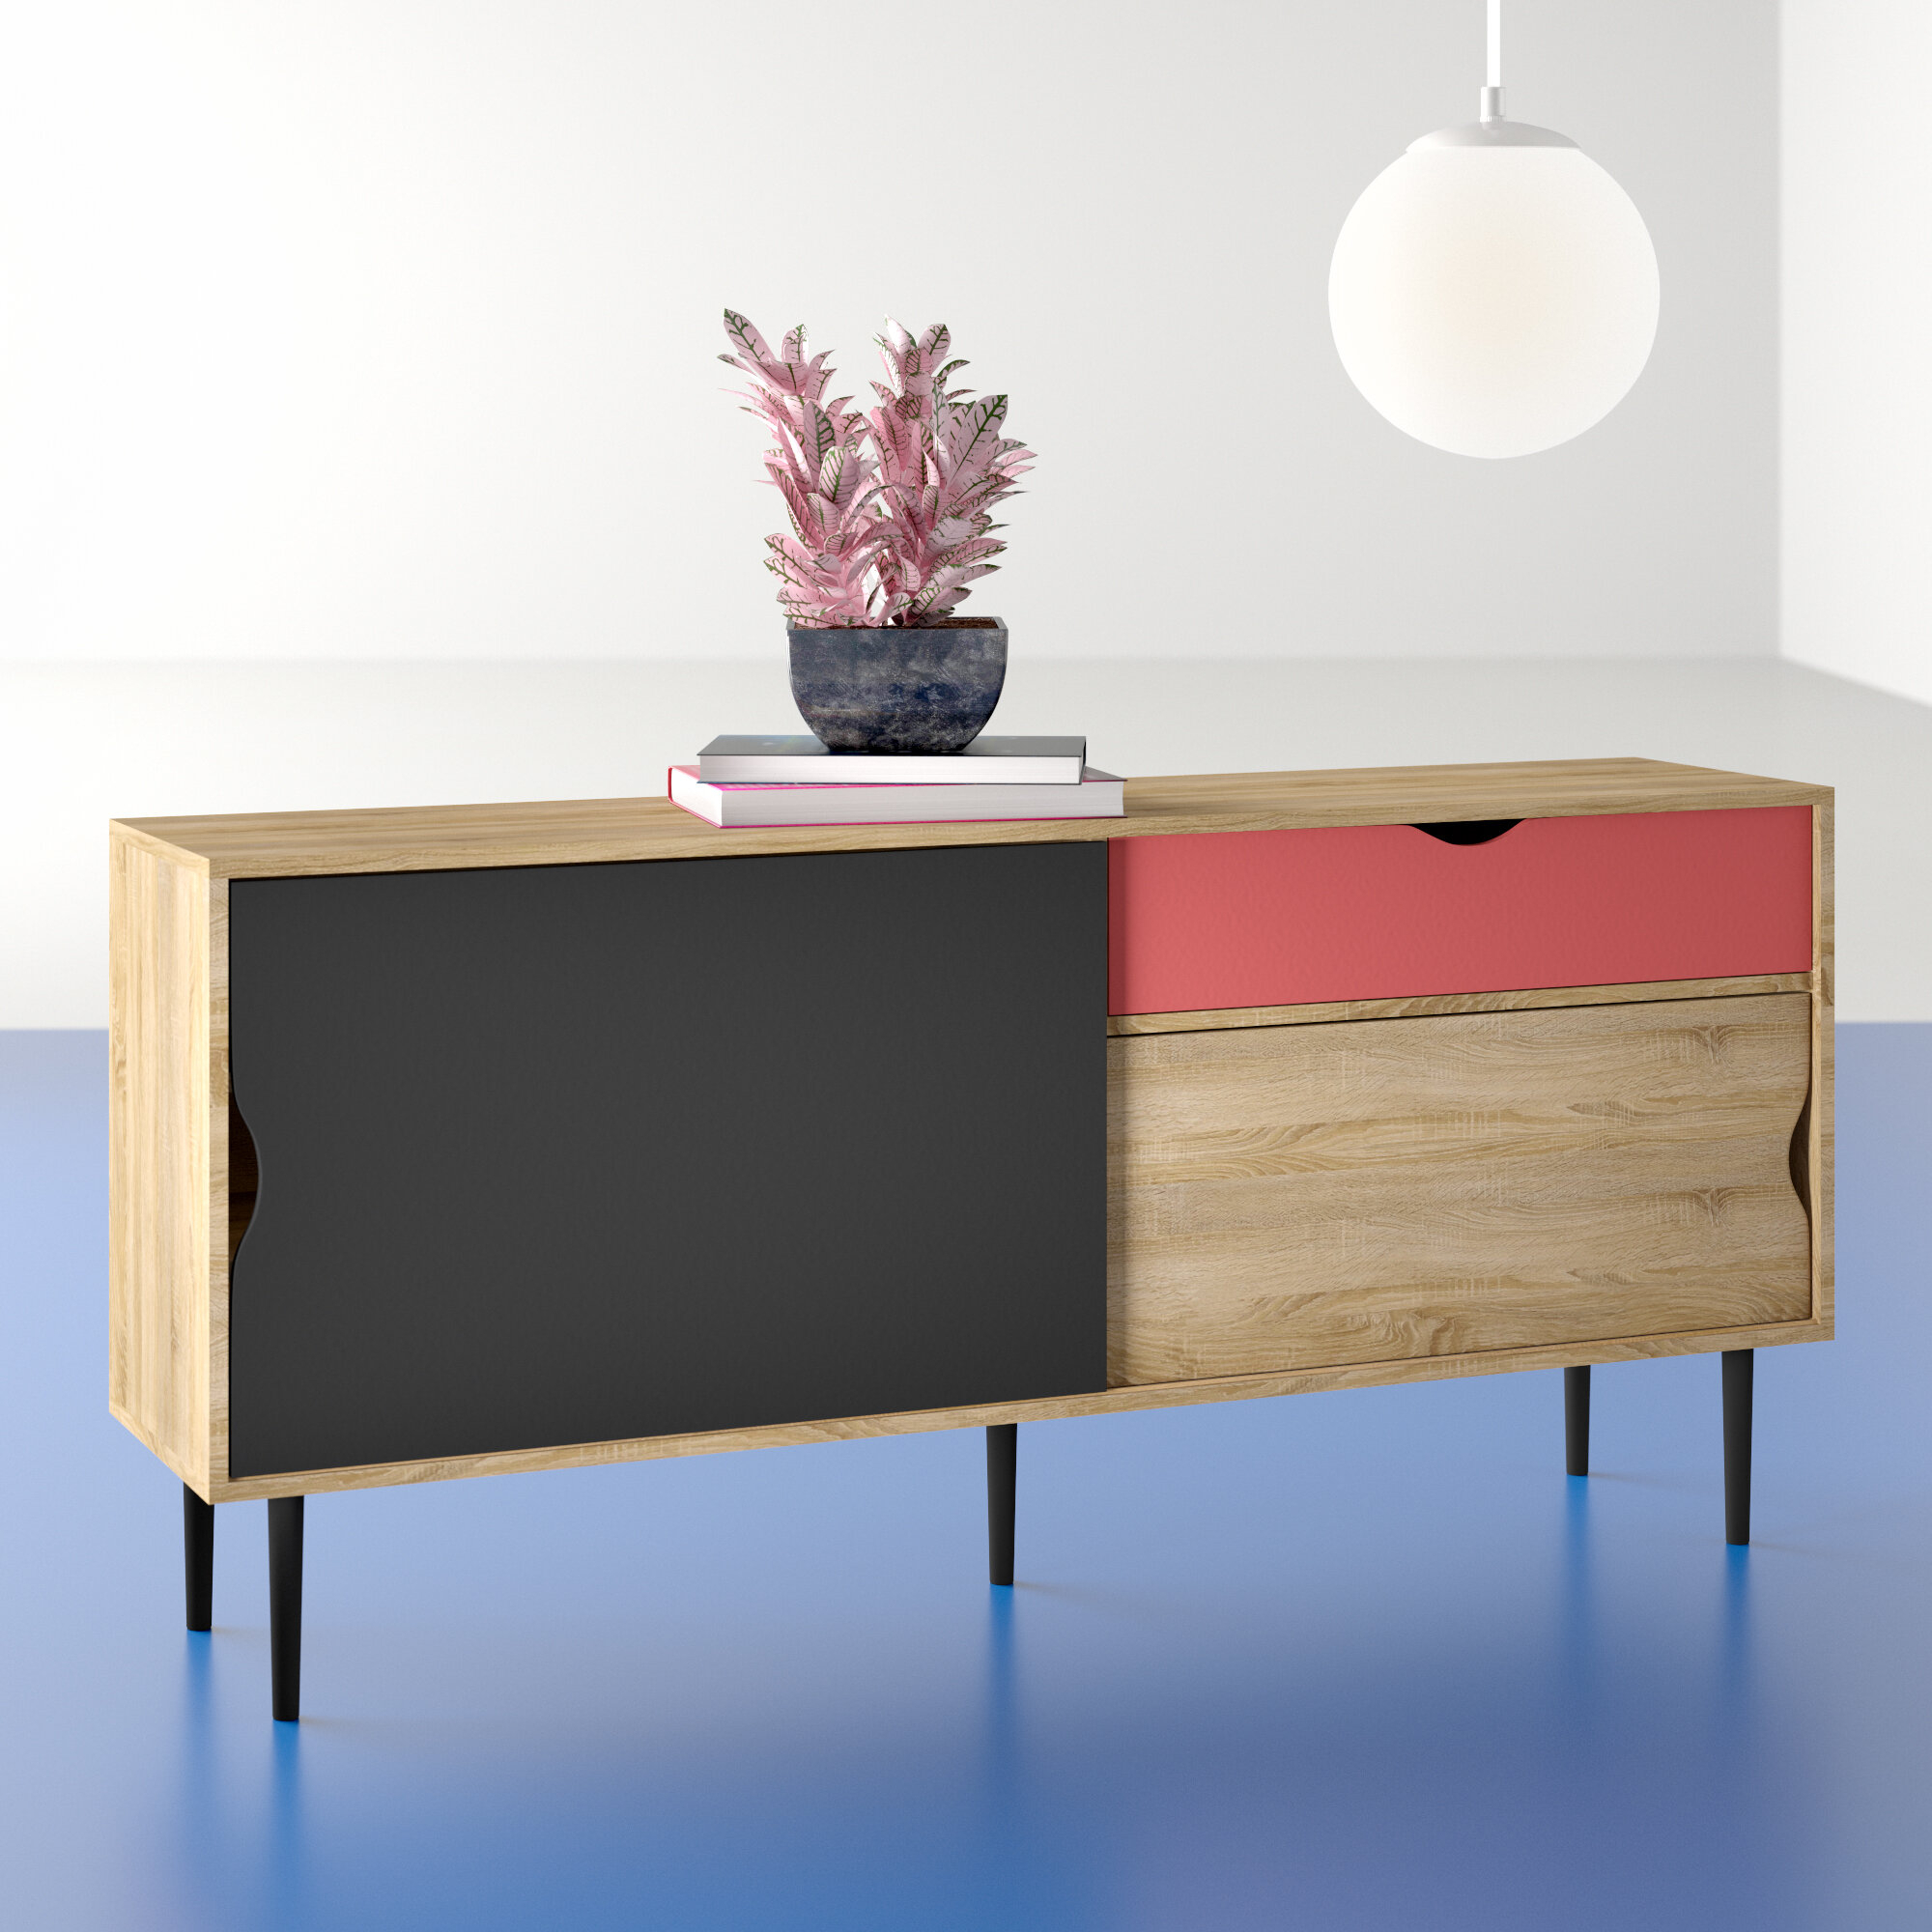 Hashtag Home Dovray Buffet Table & Reviews | Wayfair With Regard To Mid Century Modern Glossy White Buffets (View 14 of 30)